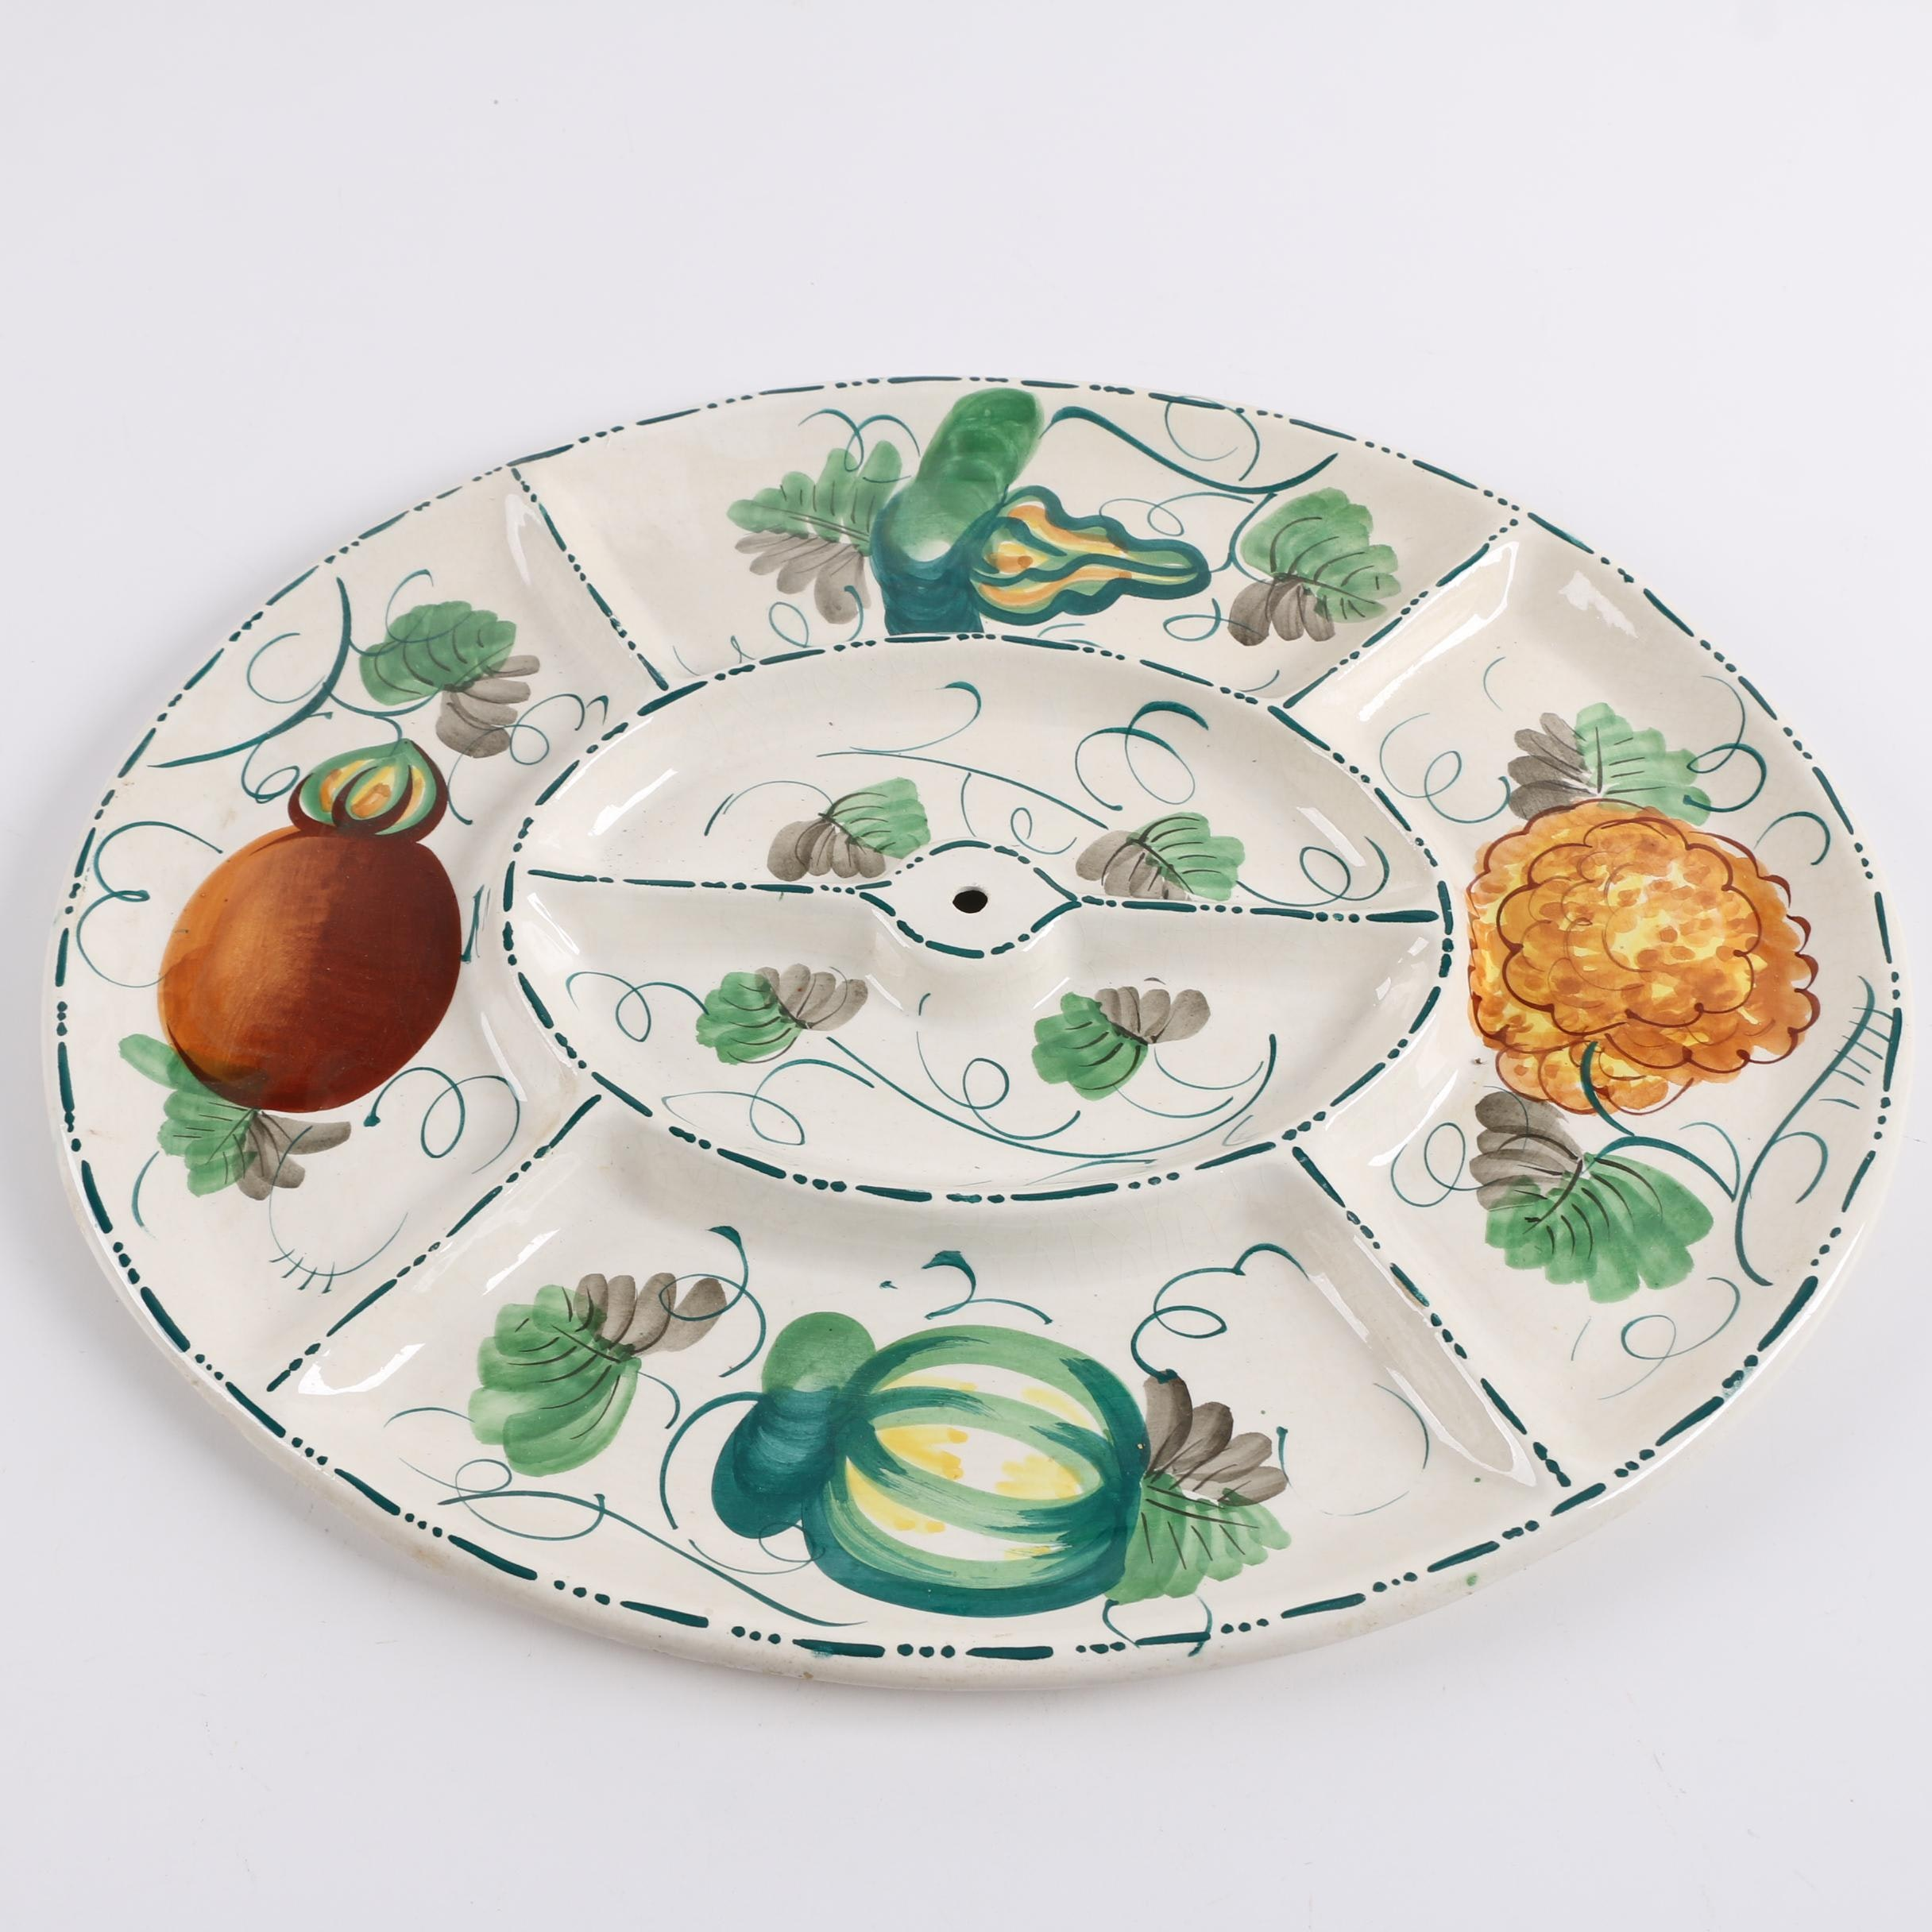 Vintage Elbee Hand-Painted Ceramic Divided Platter